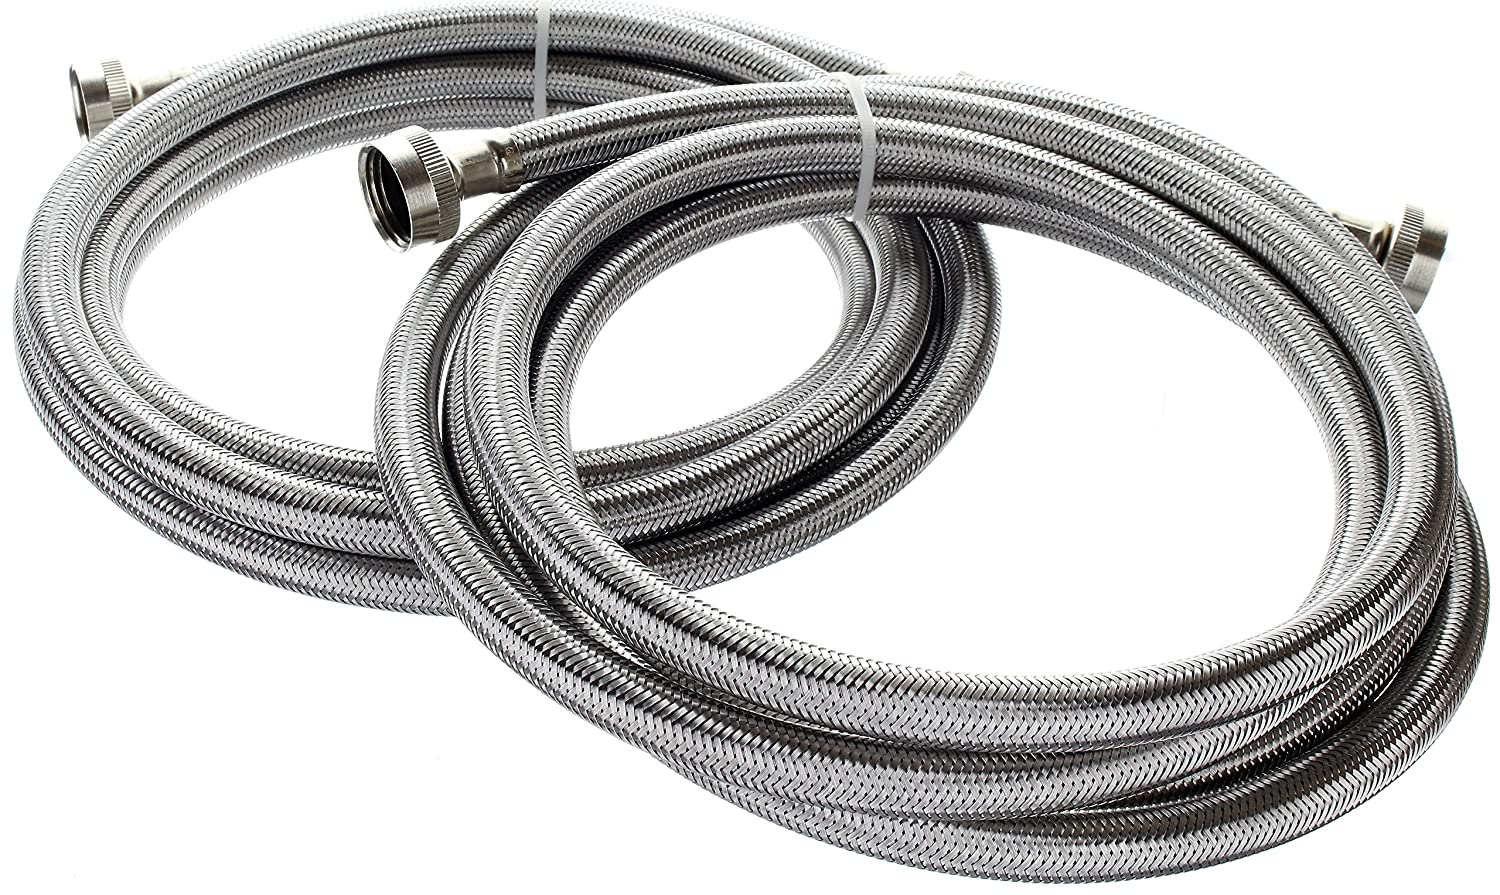 Kelaro 10 Foot Stainless Steel Washing Machine Hoses (2 Pack) Burst Proof, Lead Free